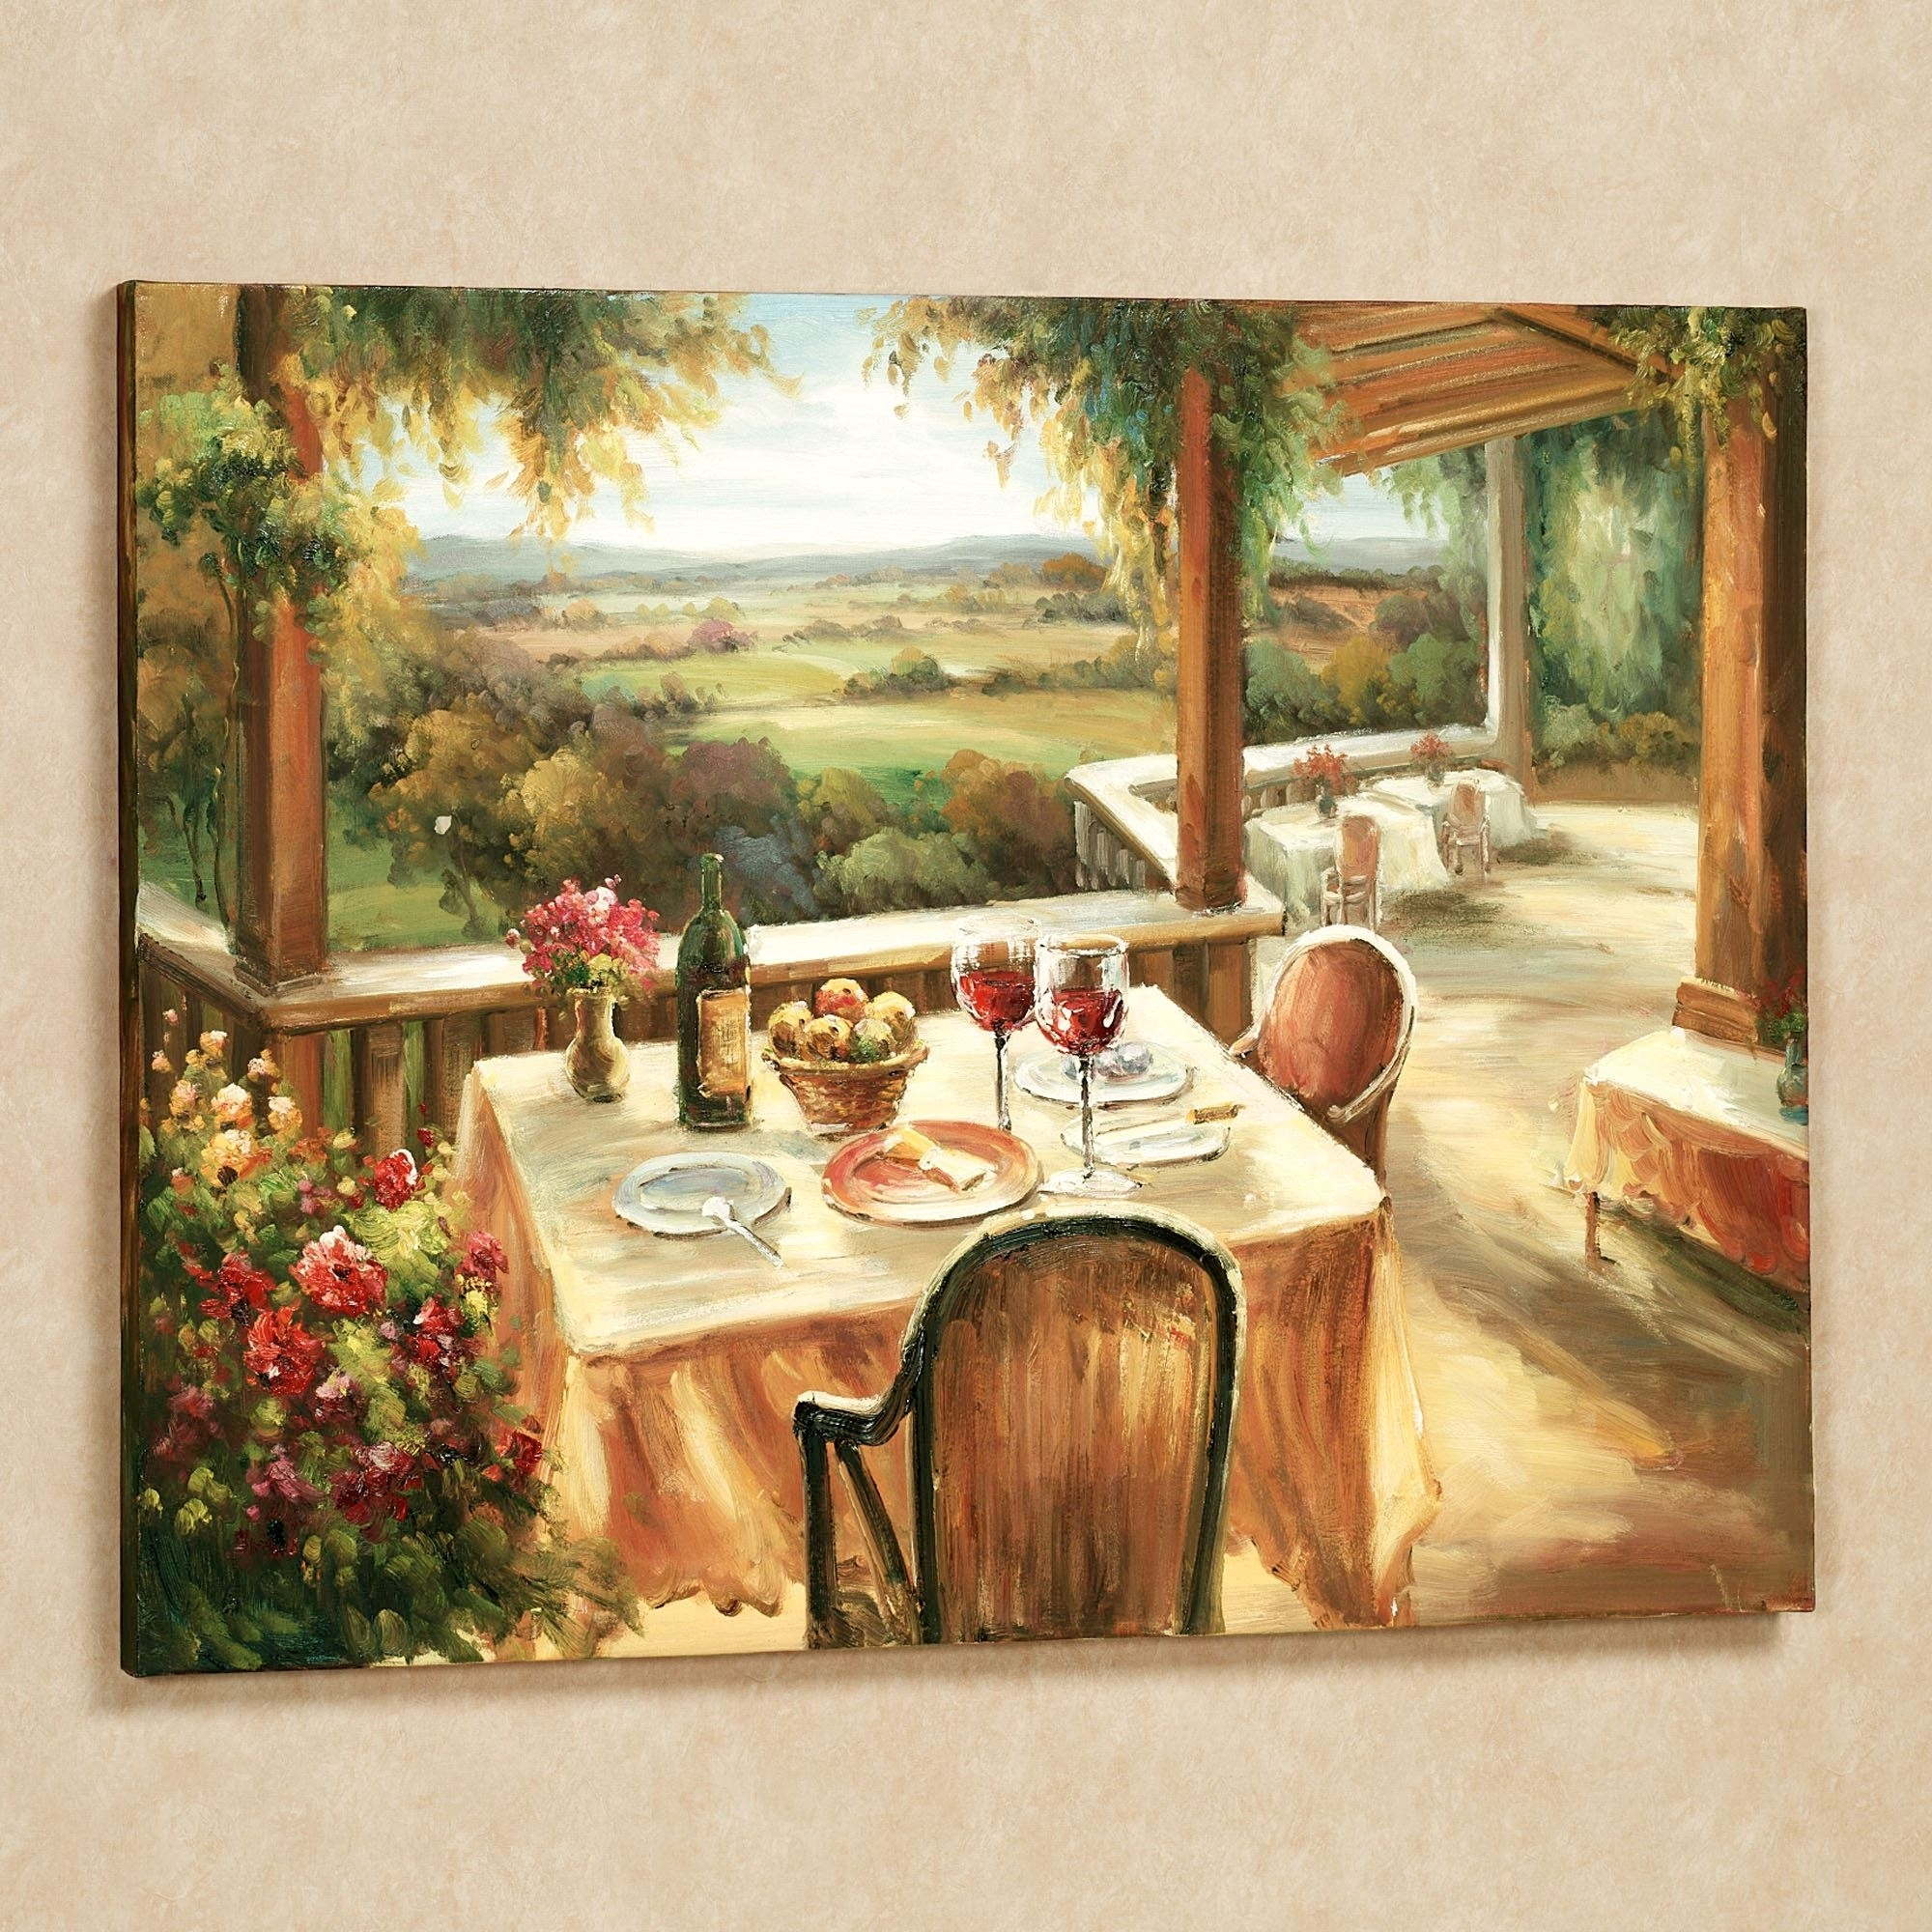 Wine And Dine Canvas Wall Art Throughout Most Popular Canvas Wall Art For Dining Room (View 13 of 15)